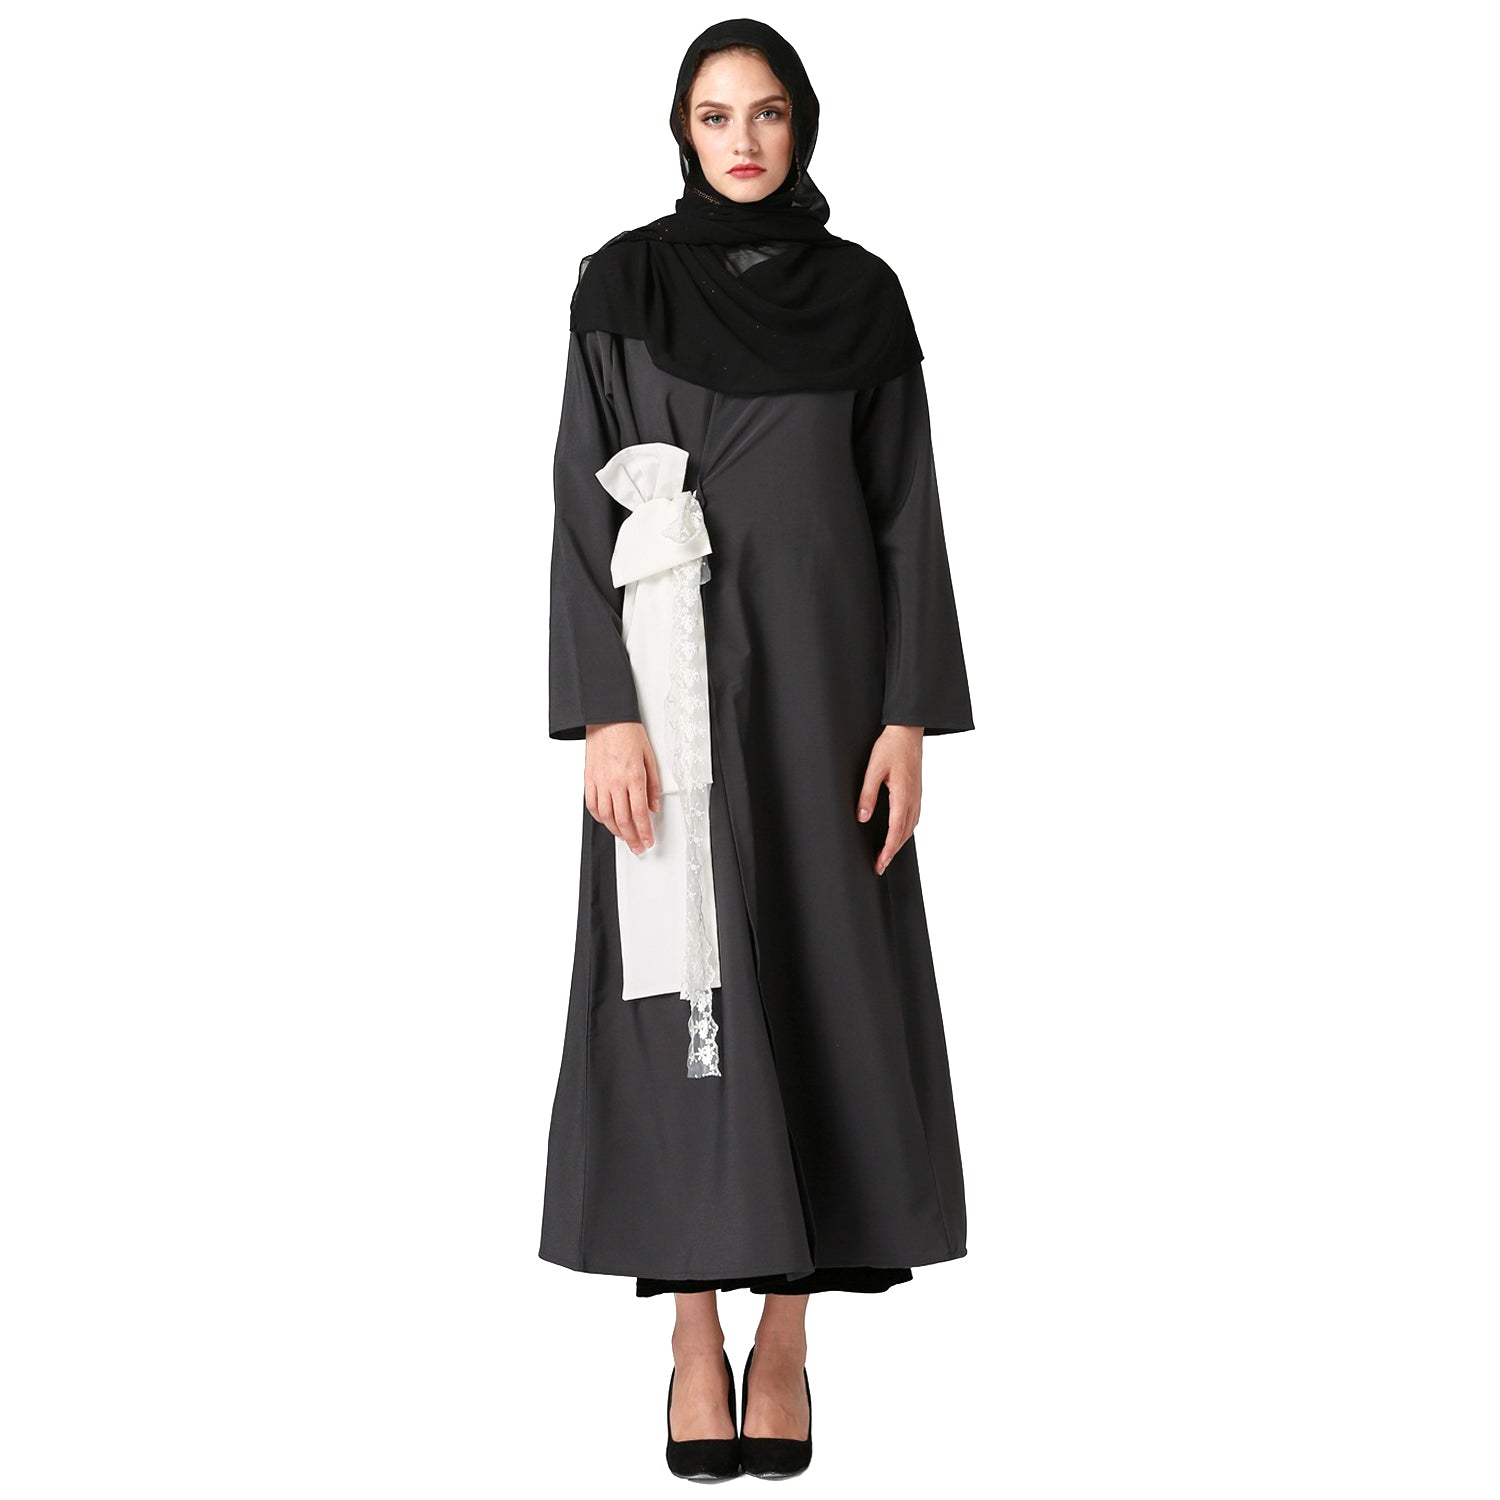 Black  Abaya - Hifza Apparel